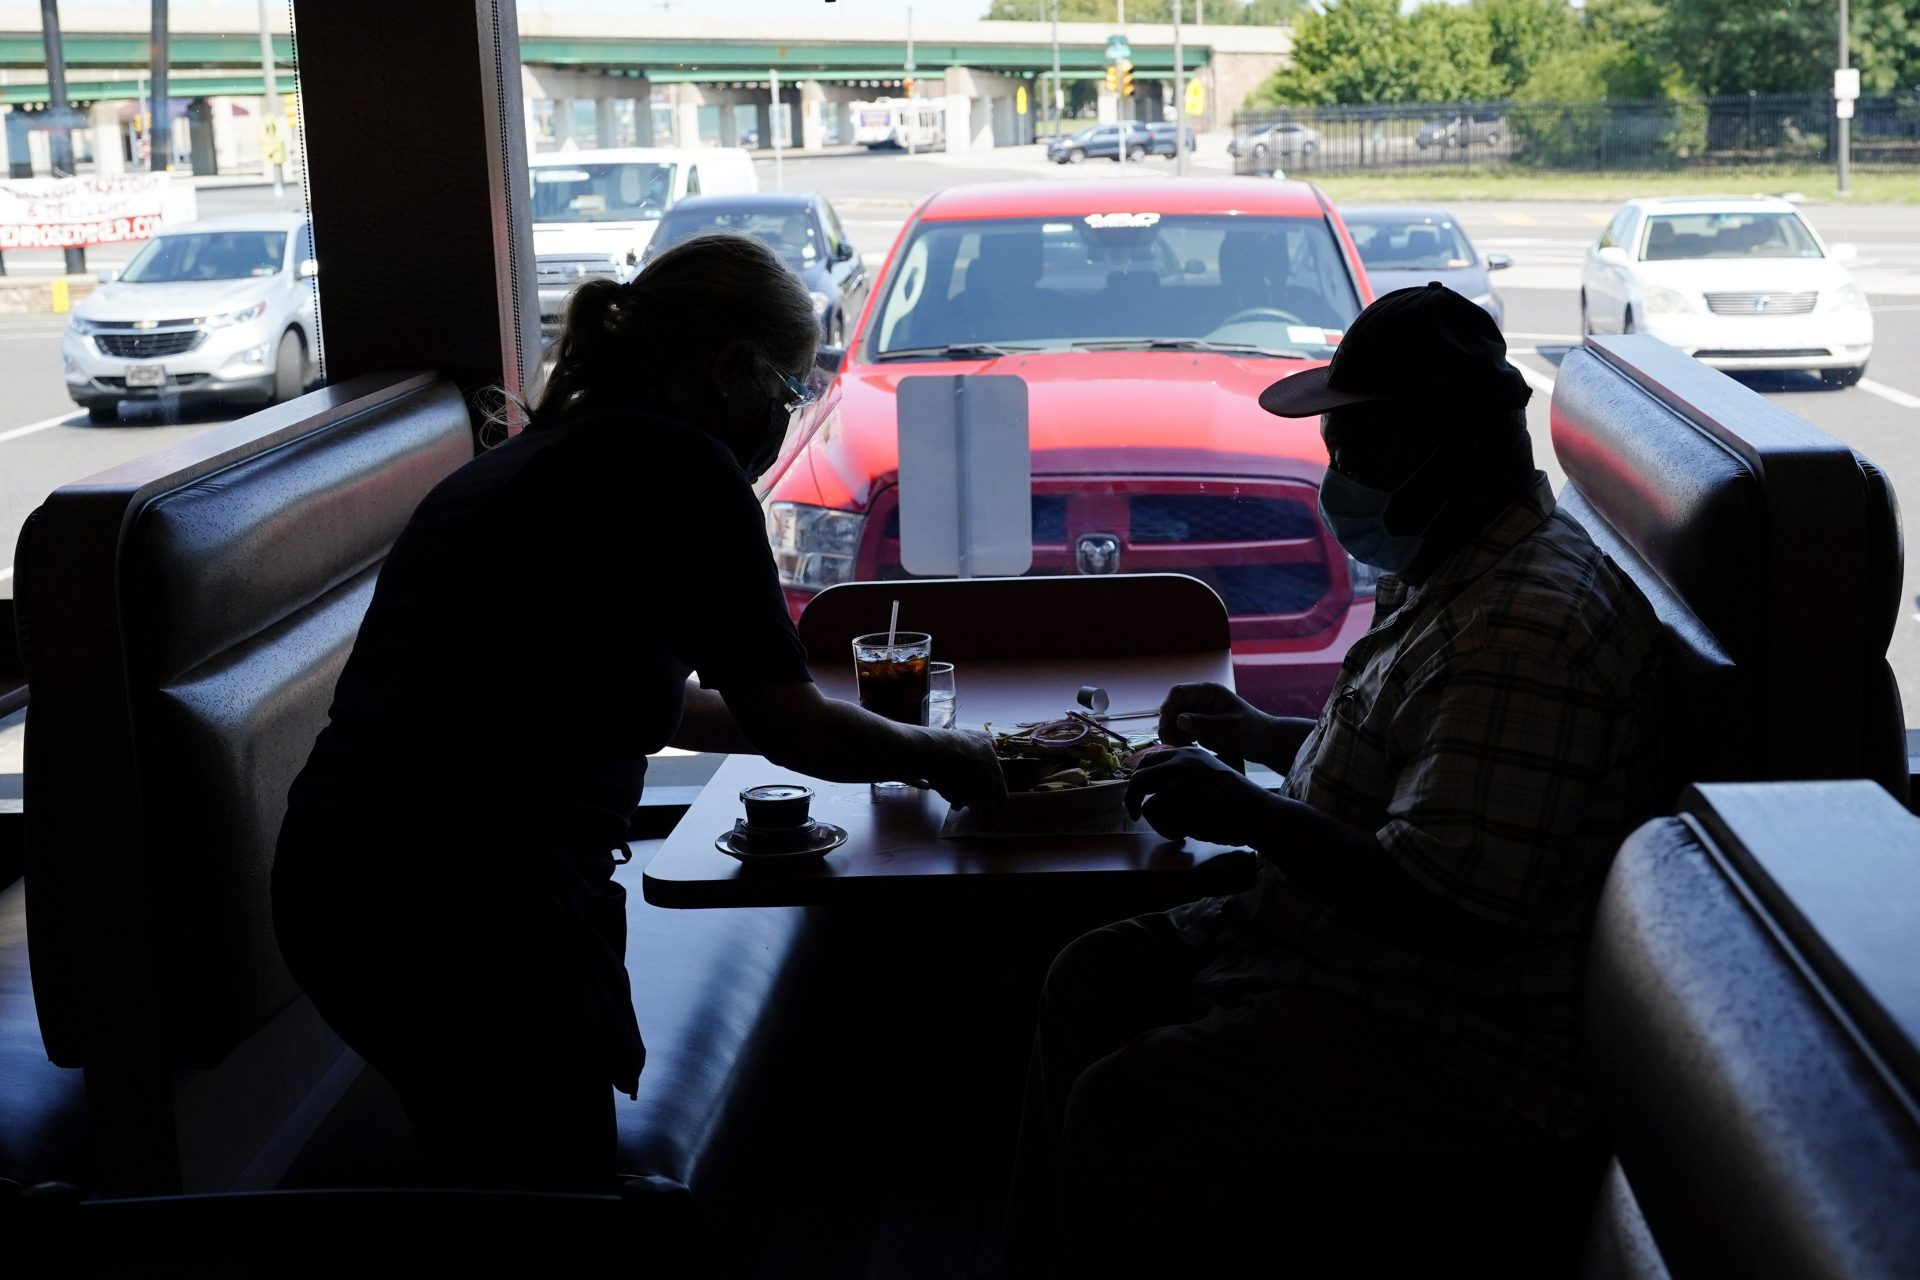 A waitress serves lunch to a customer at the Penrose Diner during the coronavirus pandemic, Tuesday, Sept. 8, 2020, in Philadelphia.